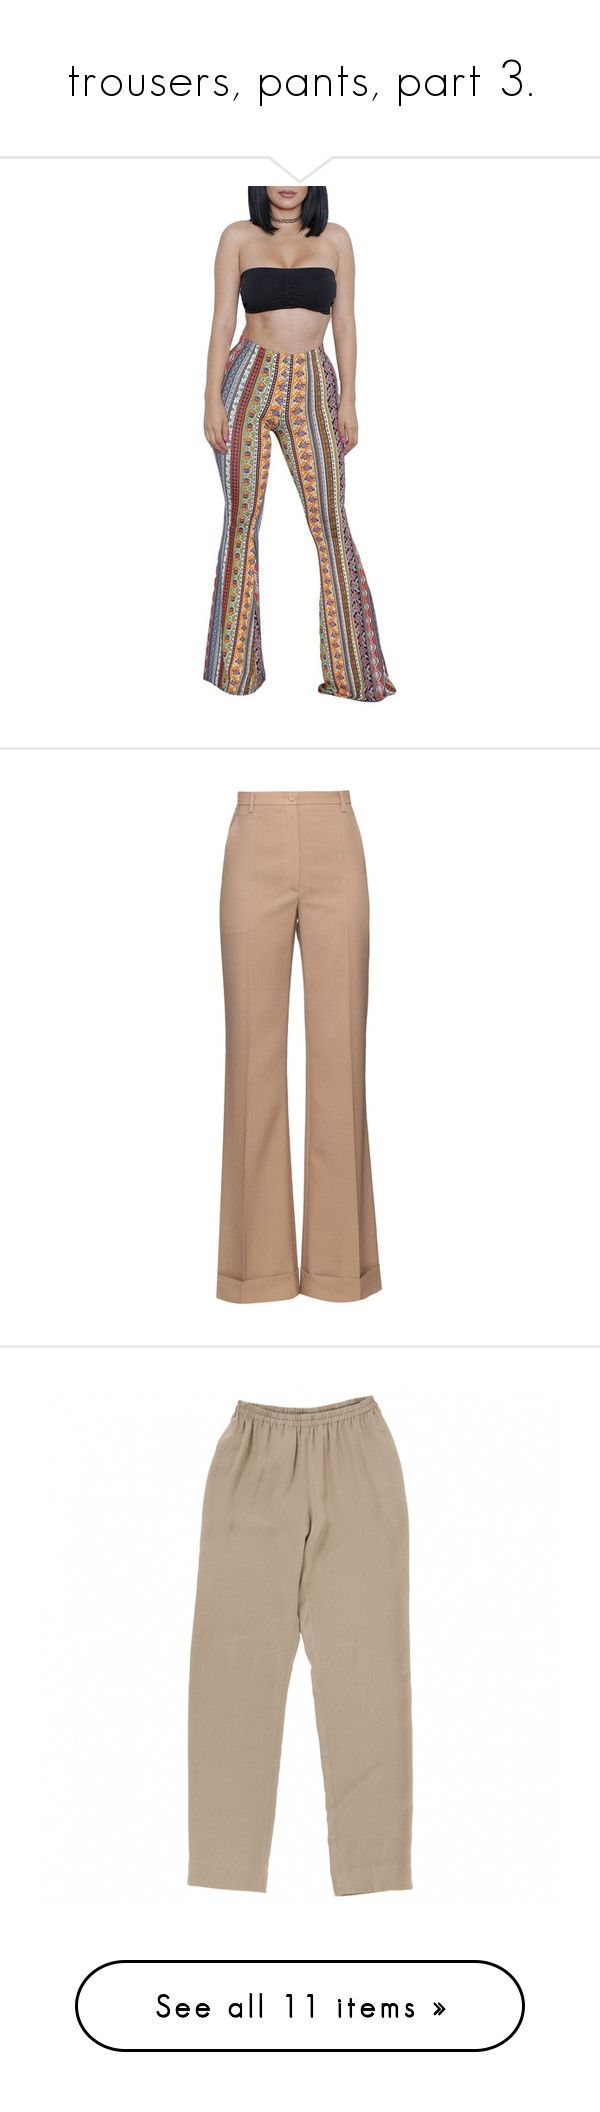 """trousers, pants, part 3."" by trillestqueen ❤ liked on Polyvore featuring bandeau tops, bandeau bikini tops, pants, trousers, bottoms, calças, pantaloni, dark beige, cuff pants and high waisted wide leg pants"